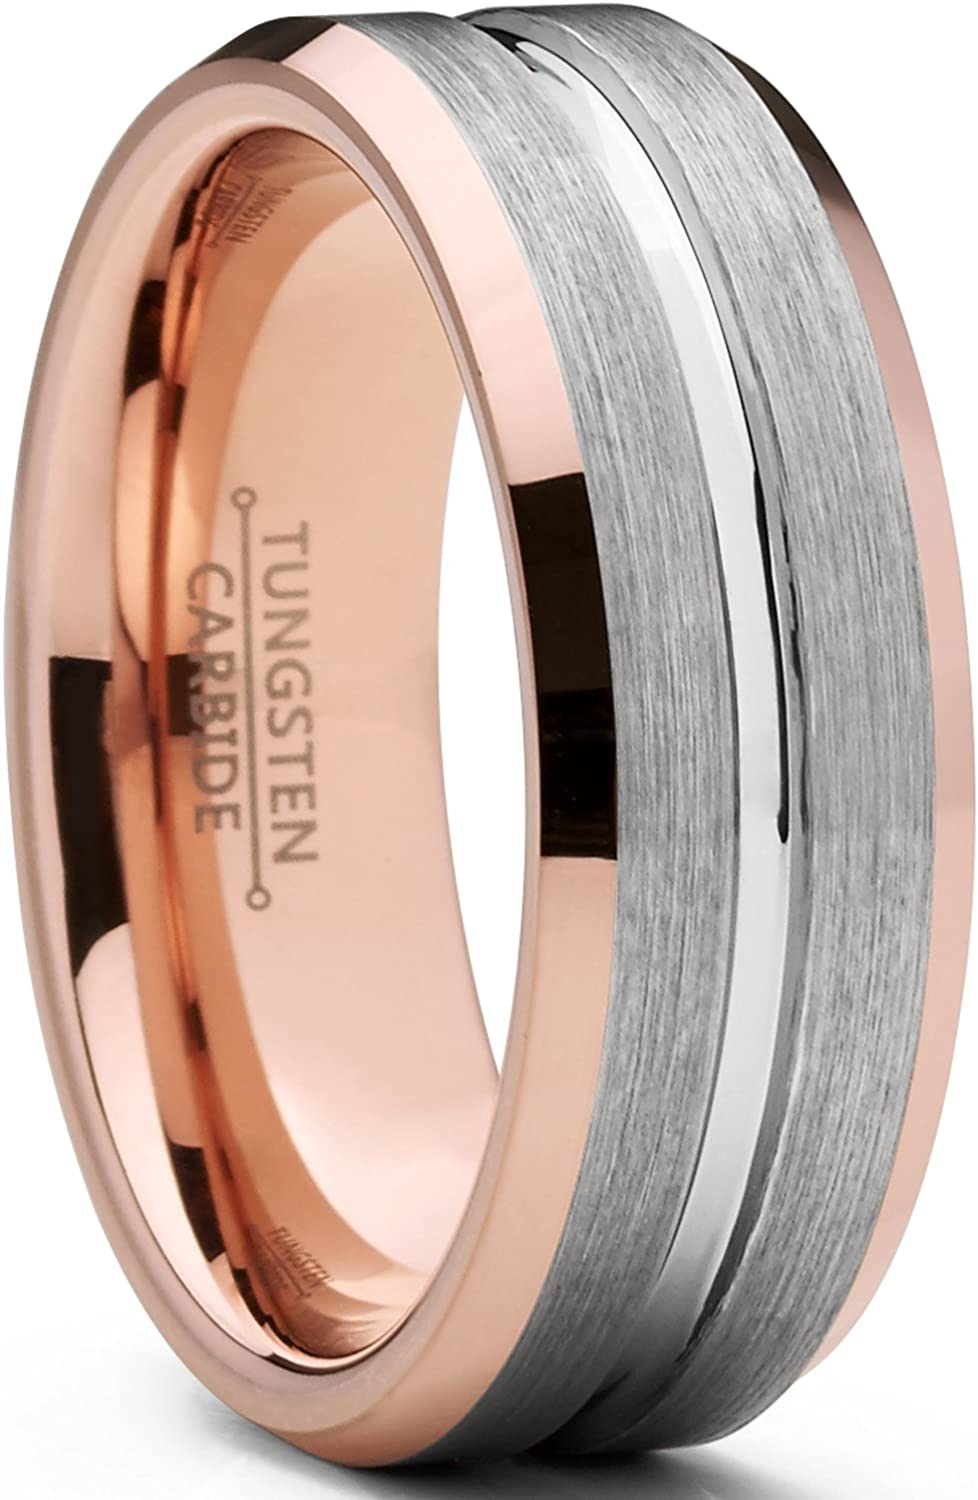 Men's Tungsten Carbide Wedding Band Ring, 8mm Flat Top Brushed Rose Tone, Pink Comfort Fit Band